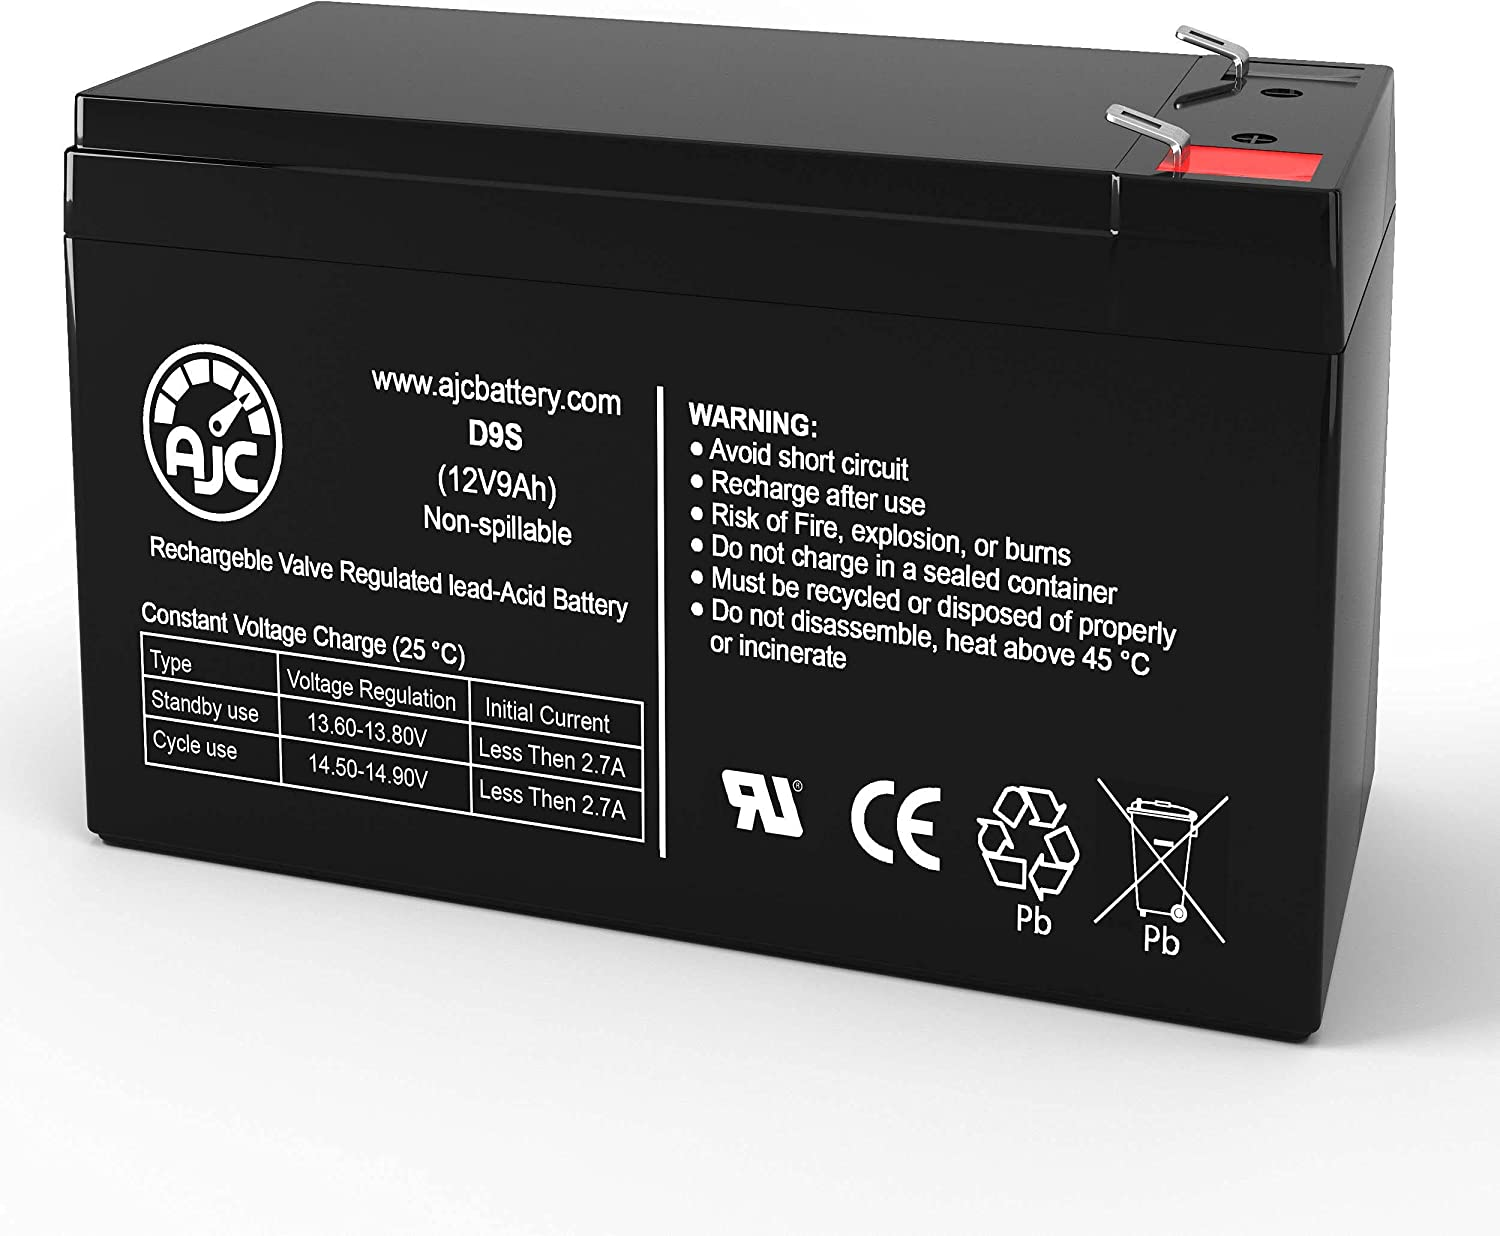 AJC Battery Compatible with PowerWare PWHR1234W2FR 12V 9Ah UPS Battery